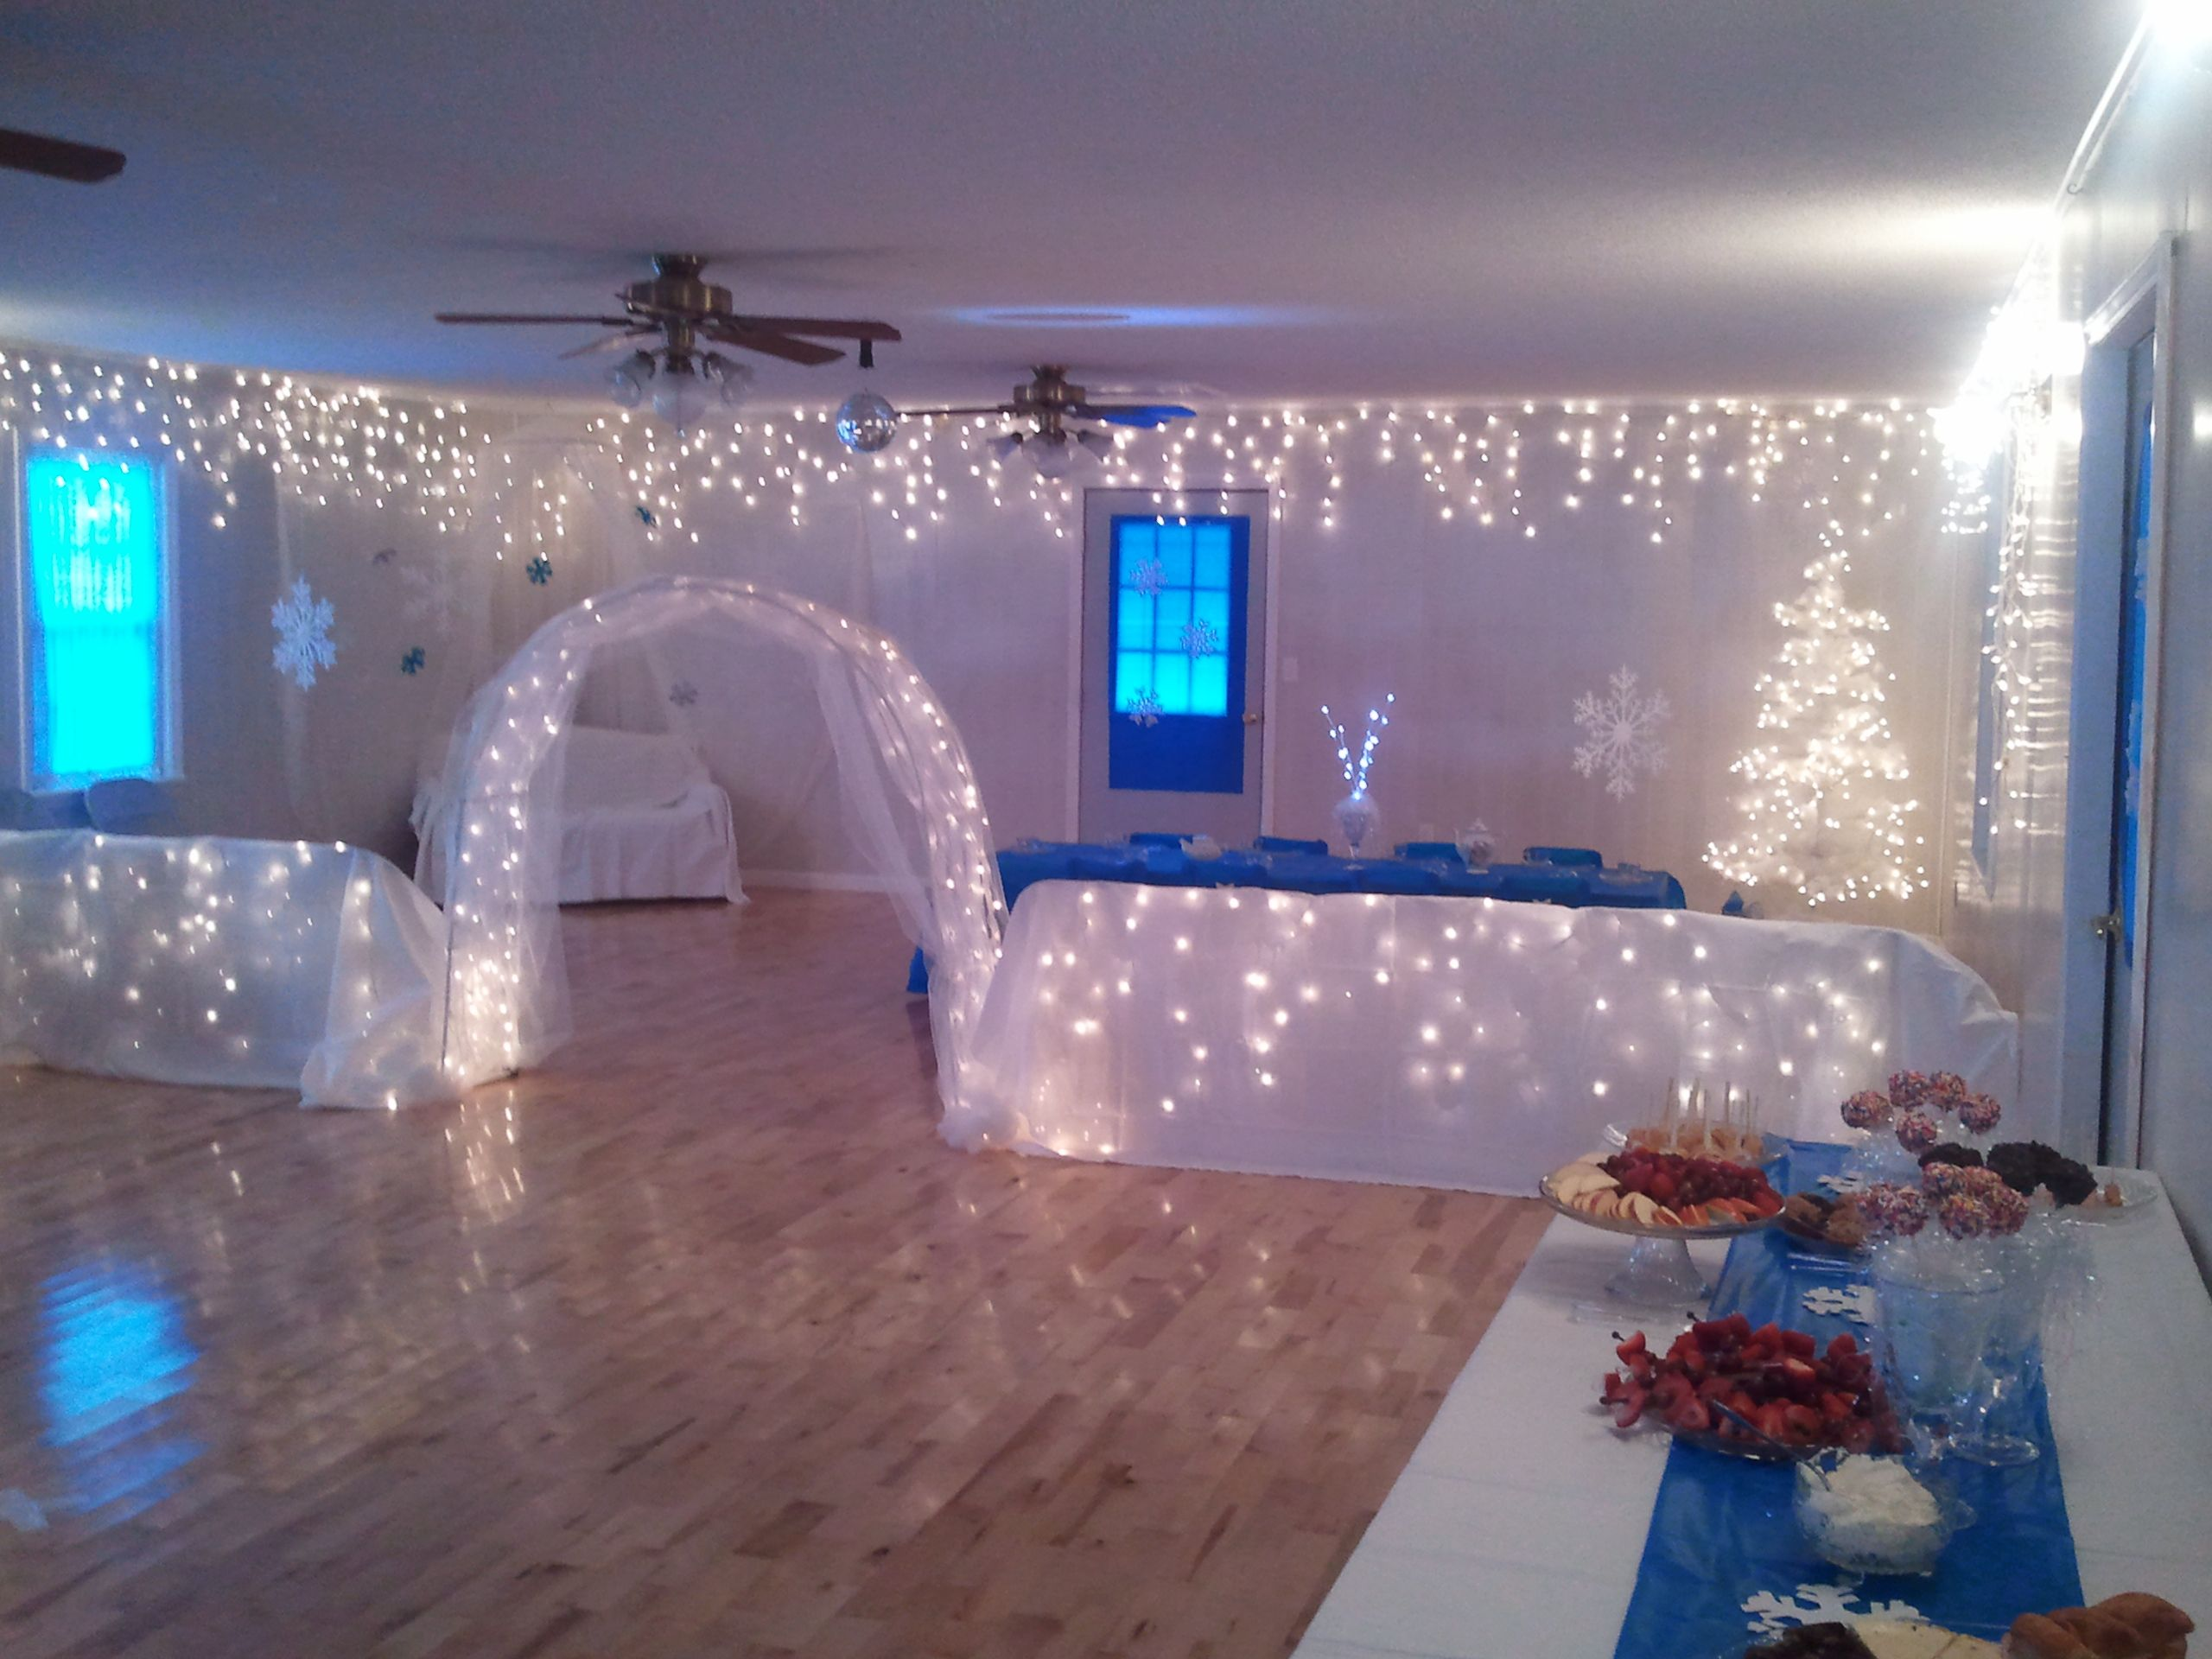 Church Fellowship Hall decorated for Mid Winter Tea Party